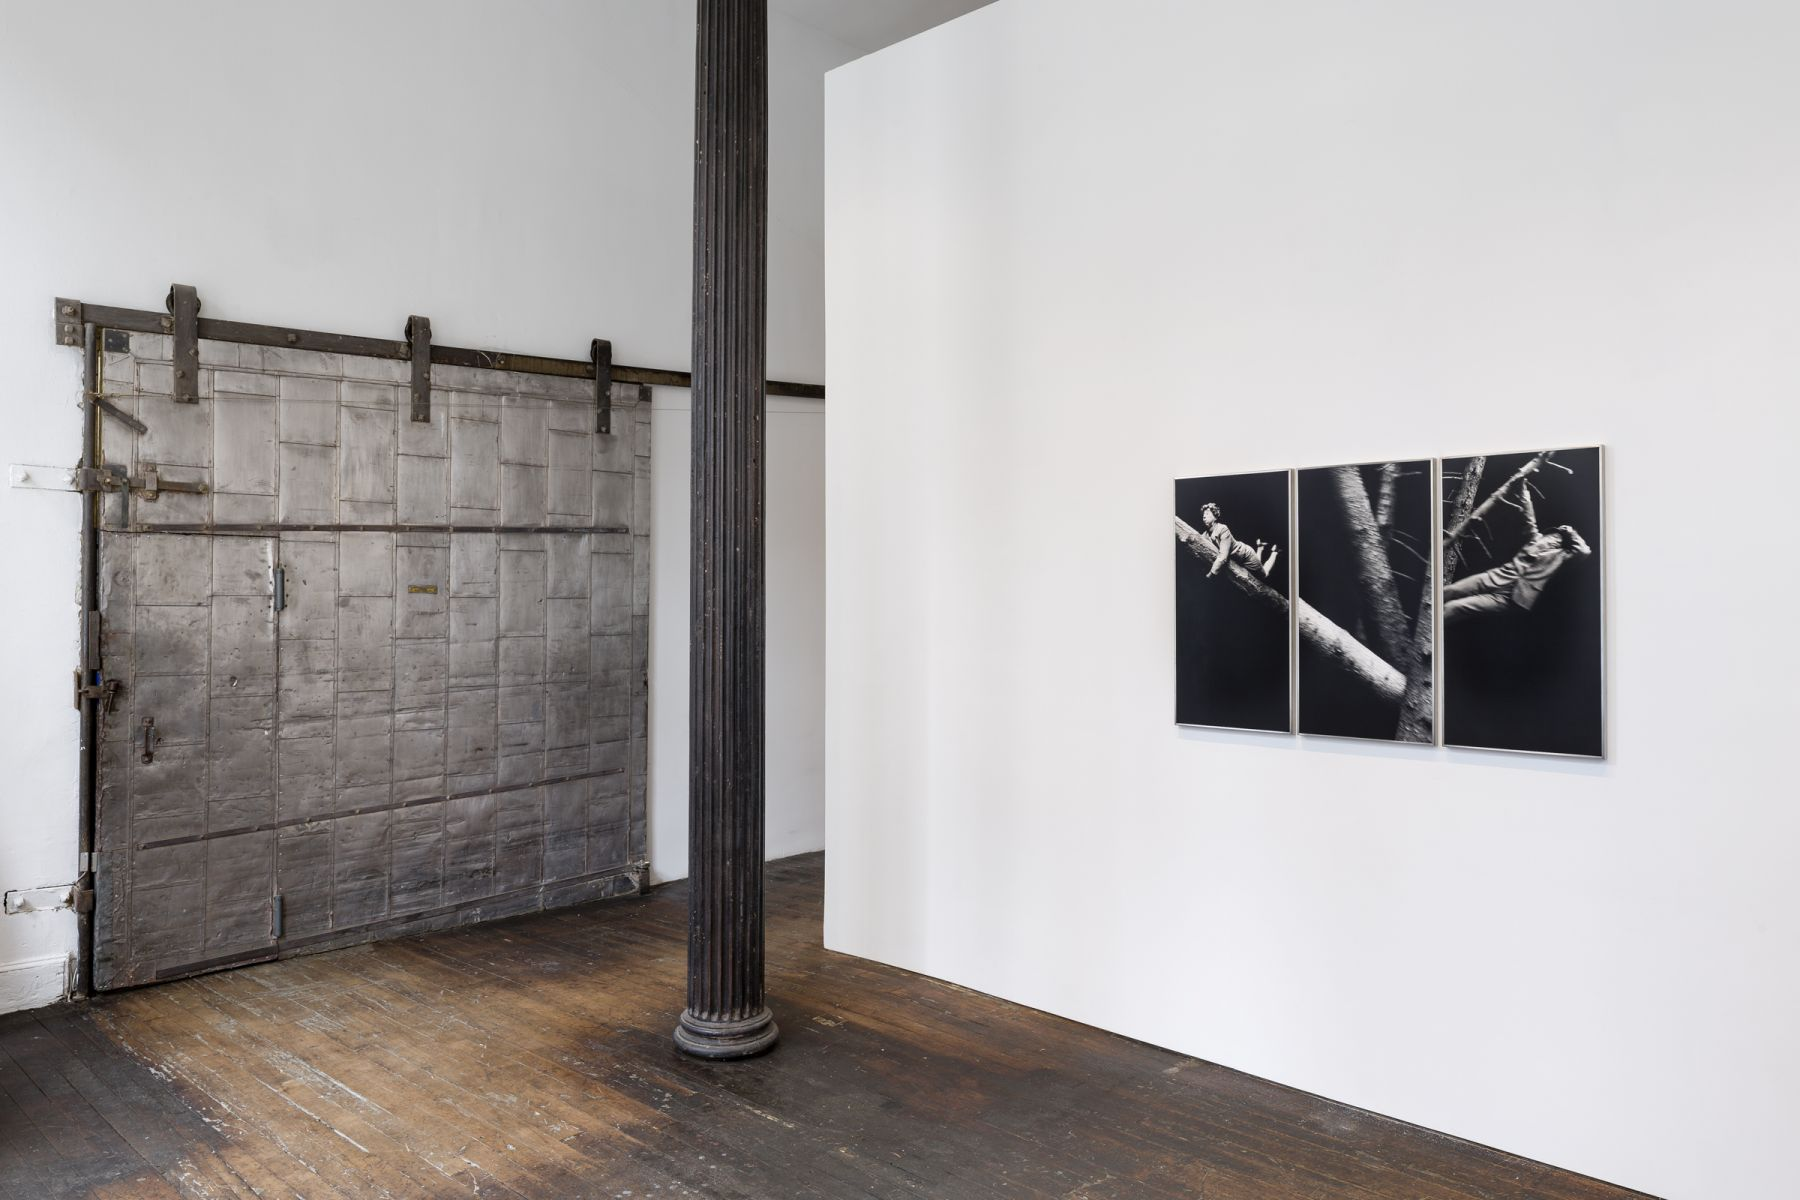 Anna and Bernhard Blume: Scenes from a Photo-Novel – installation view 1